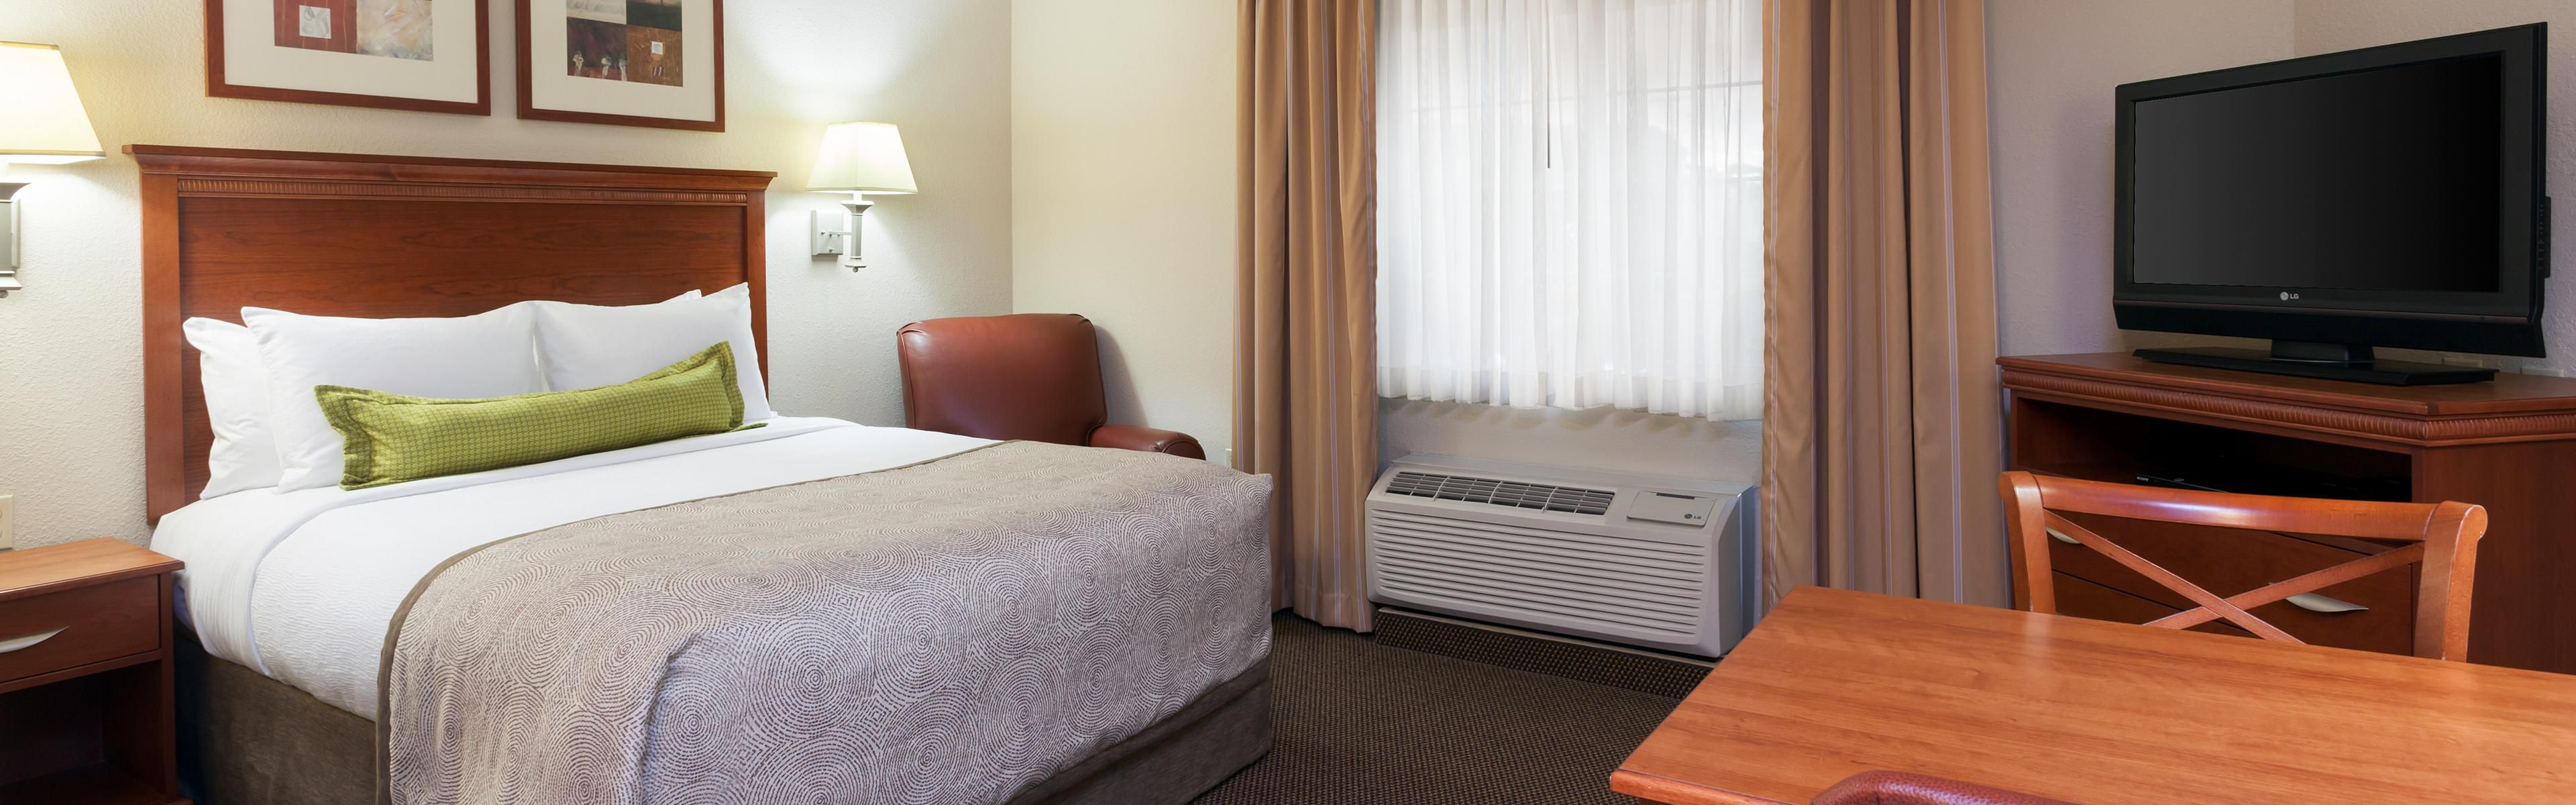 Candlewood Suites Reading image 1